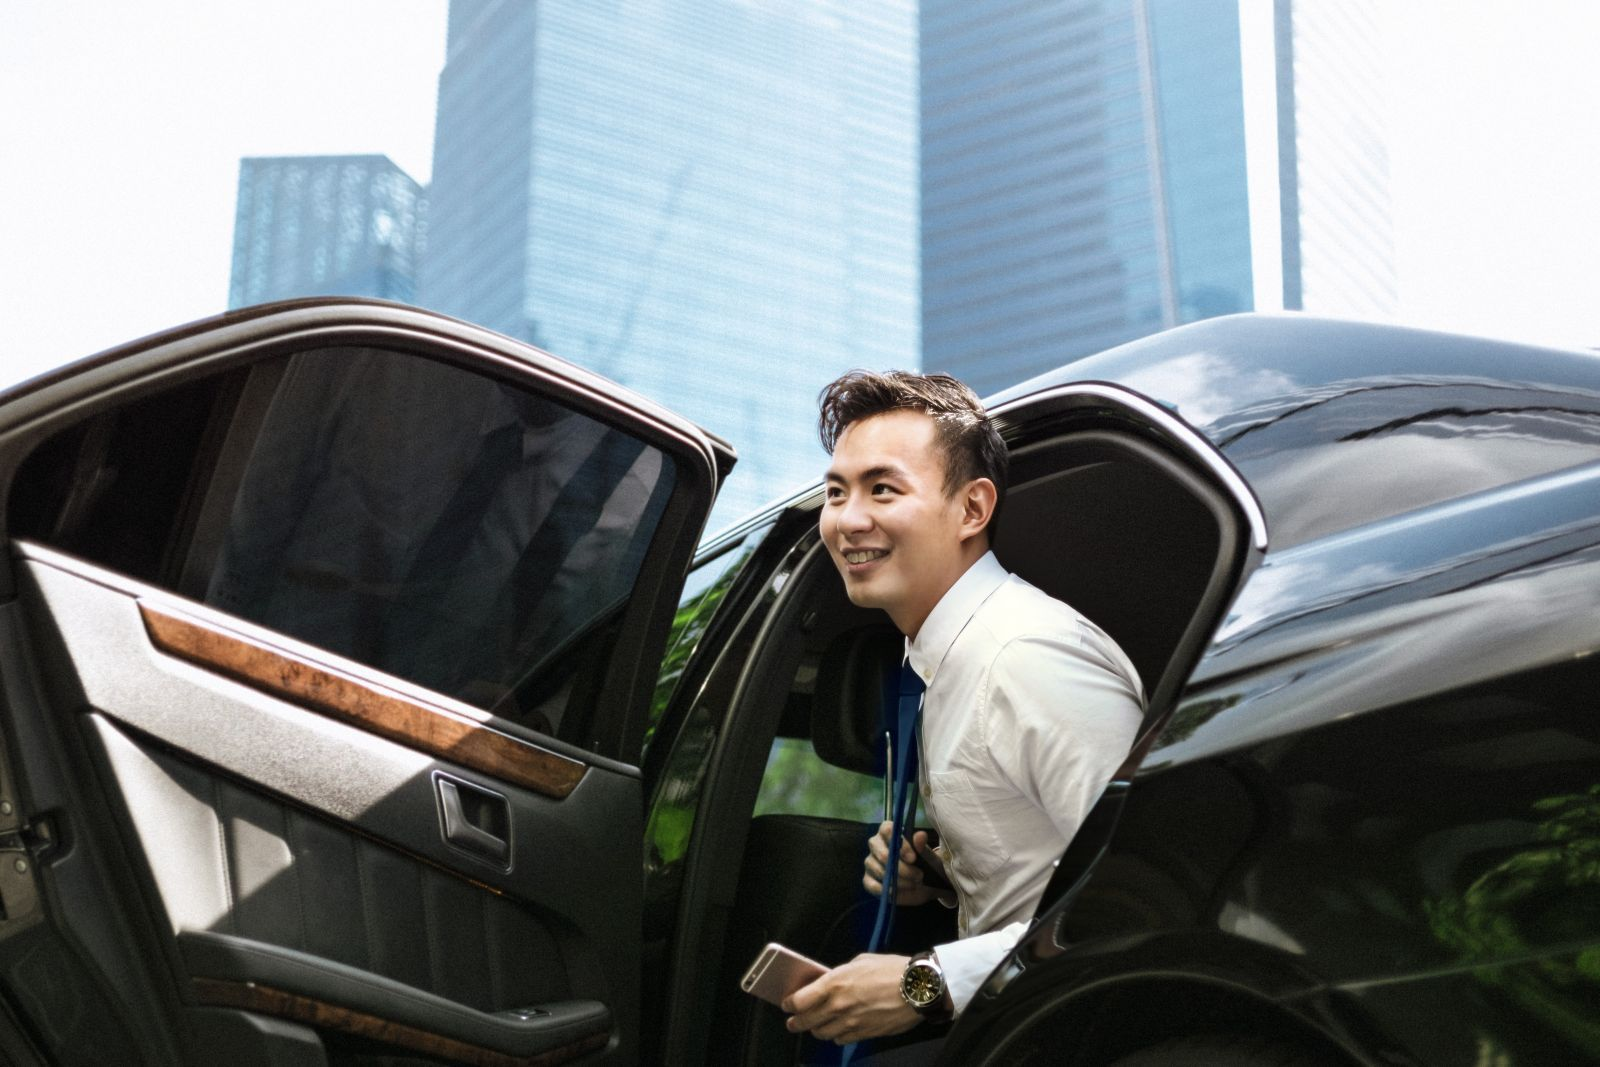 4 ways your company will benefit from Grab for Work, Transport - THE